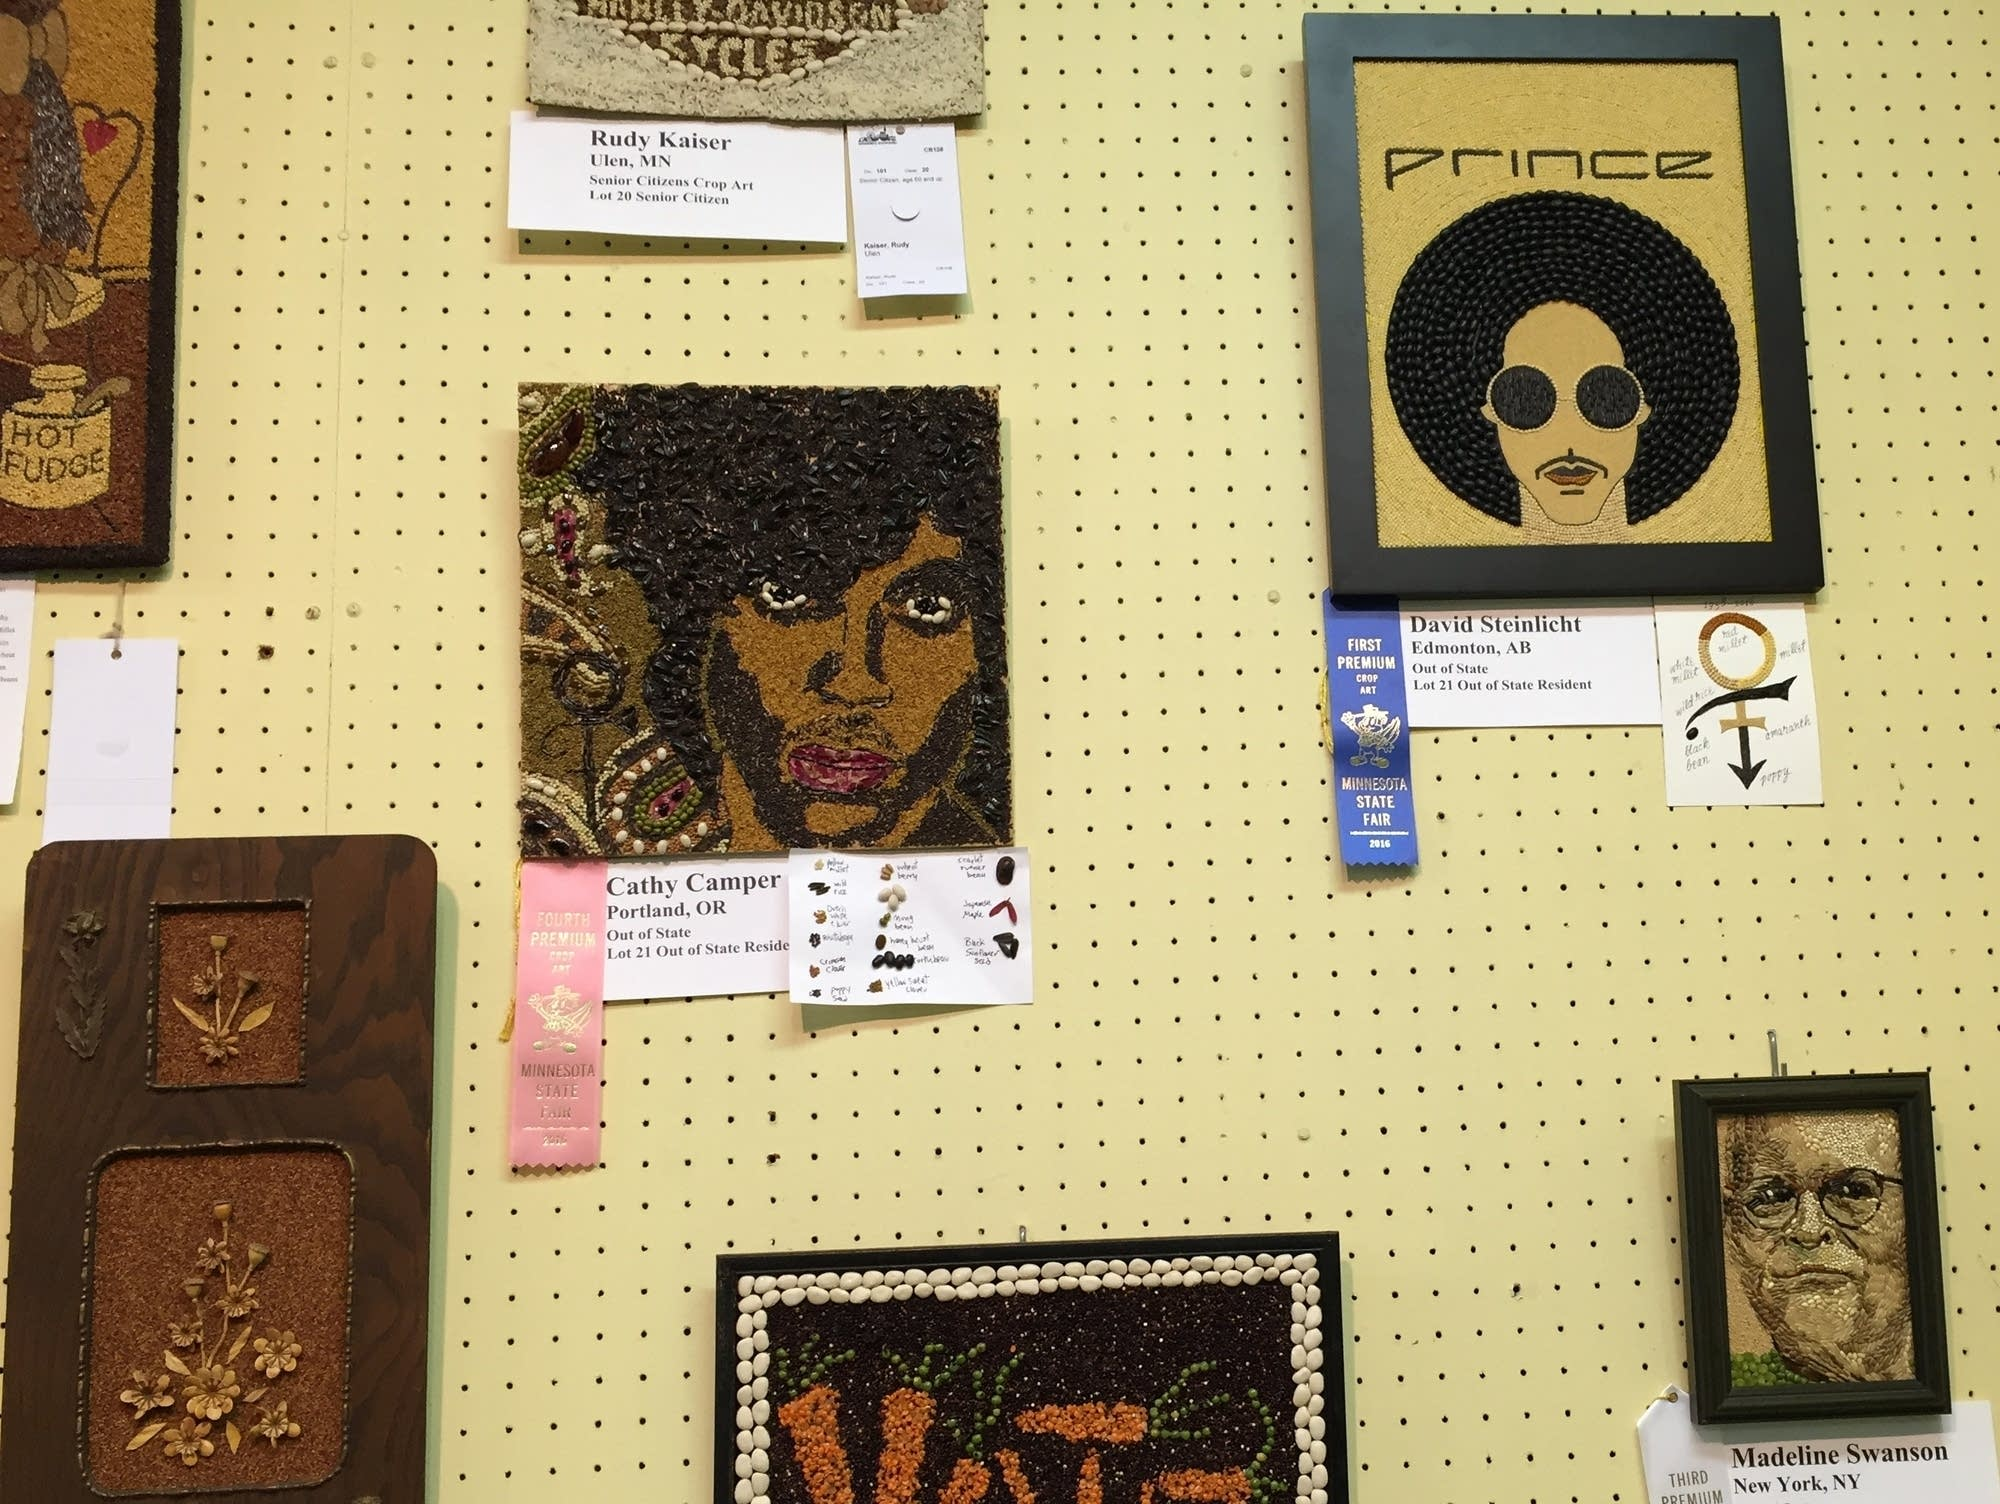 Prince seed art portraits from the 2016 Minnesota State Fair